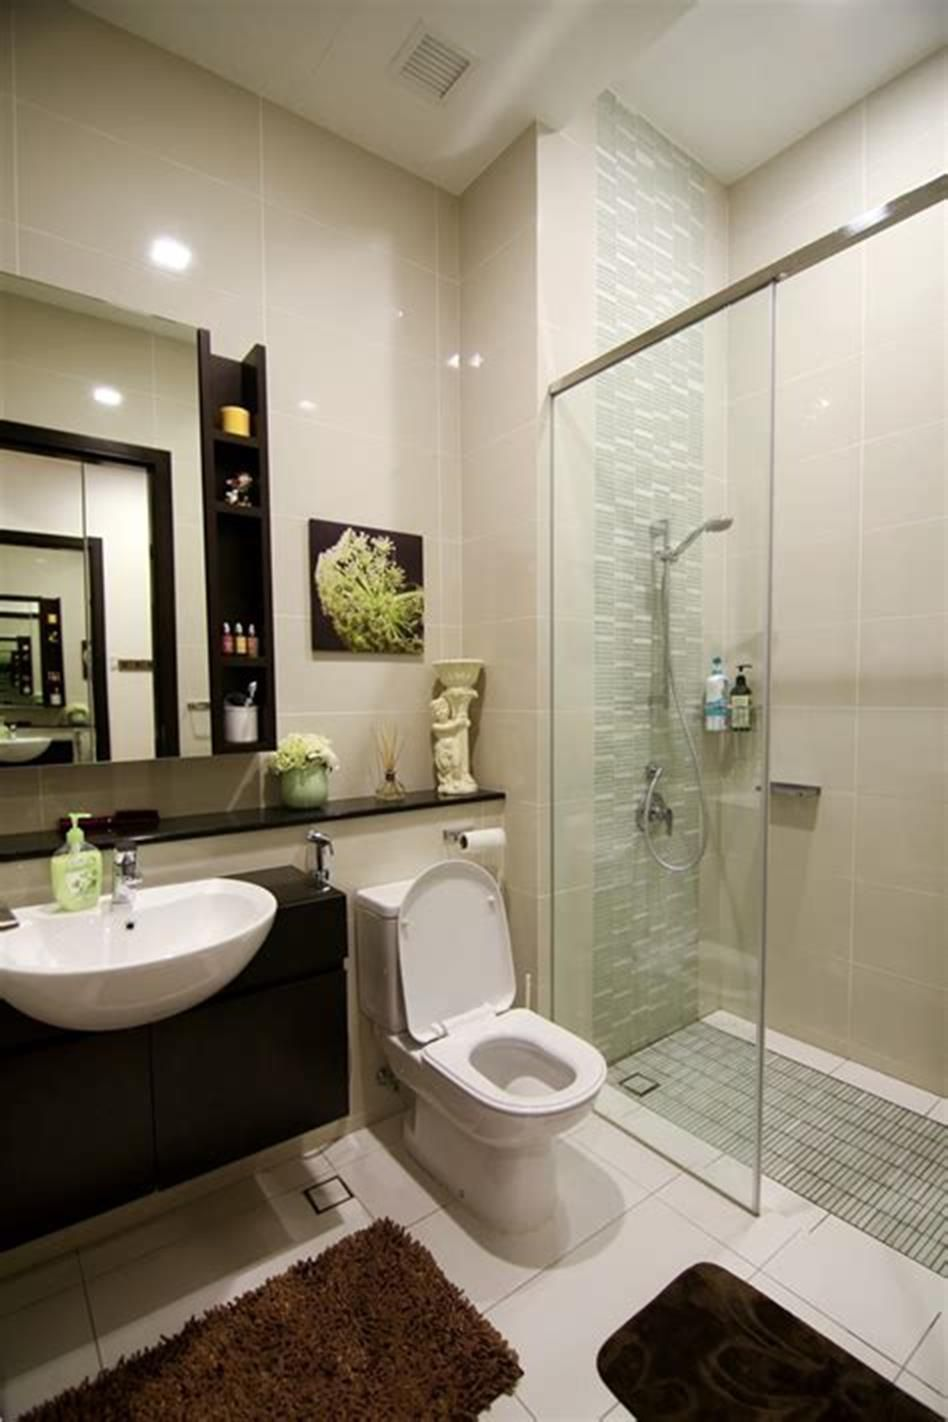 36 Affordable Simple Bathroom Decor And Design Ideas Homenthusiastic Simple Bathroom Simple Bathroom Decor Bathroom Design